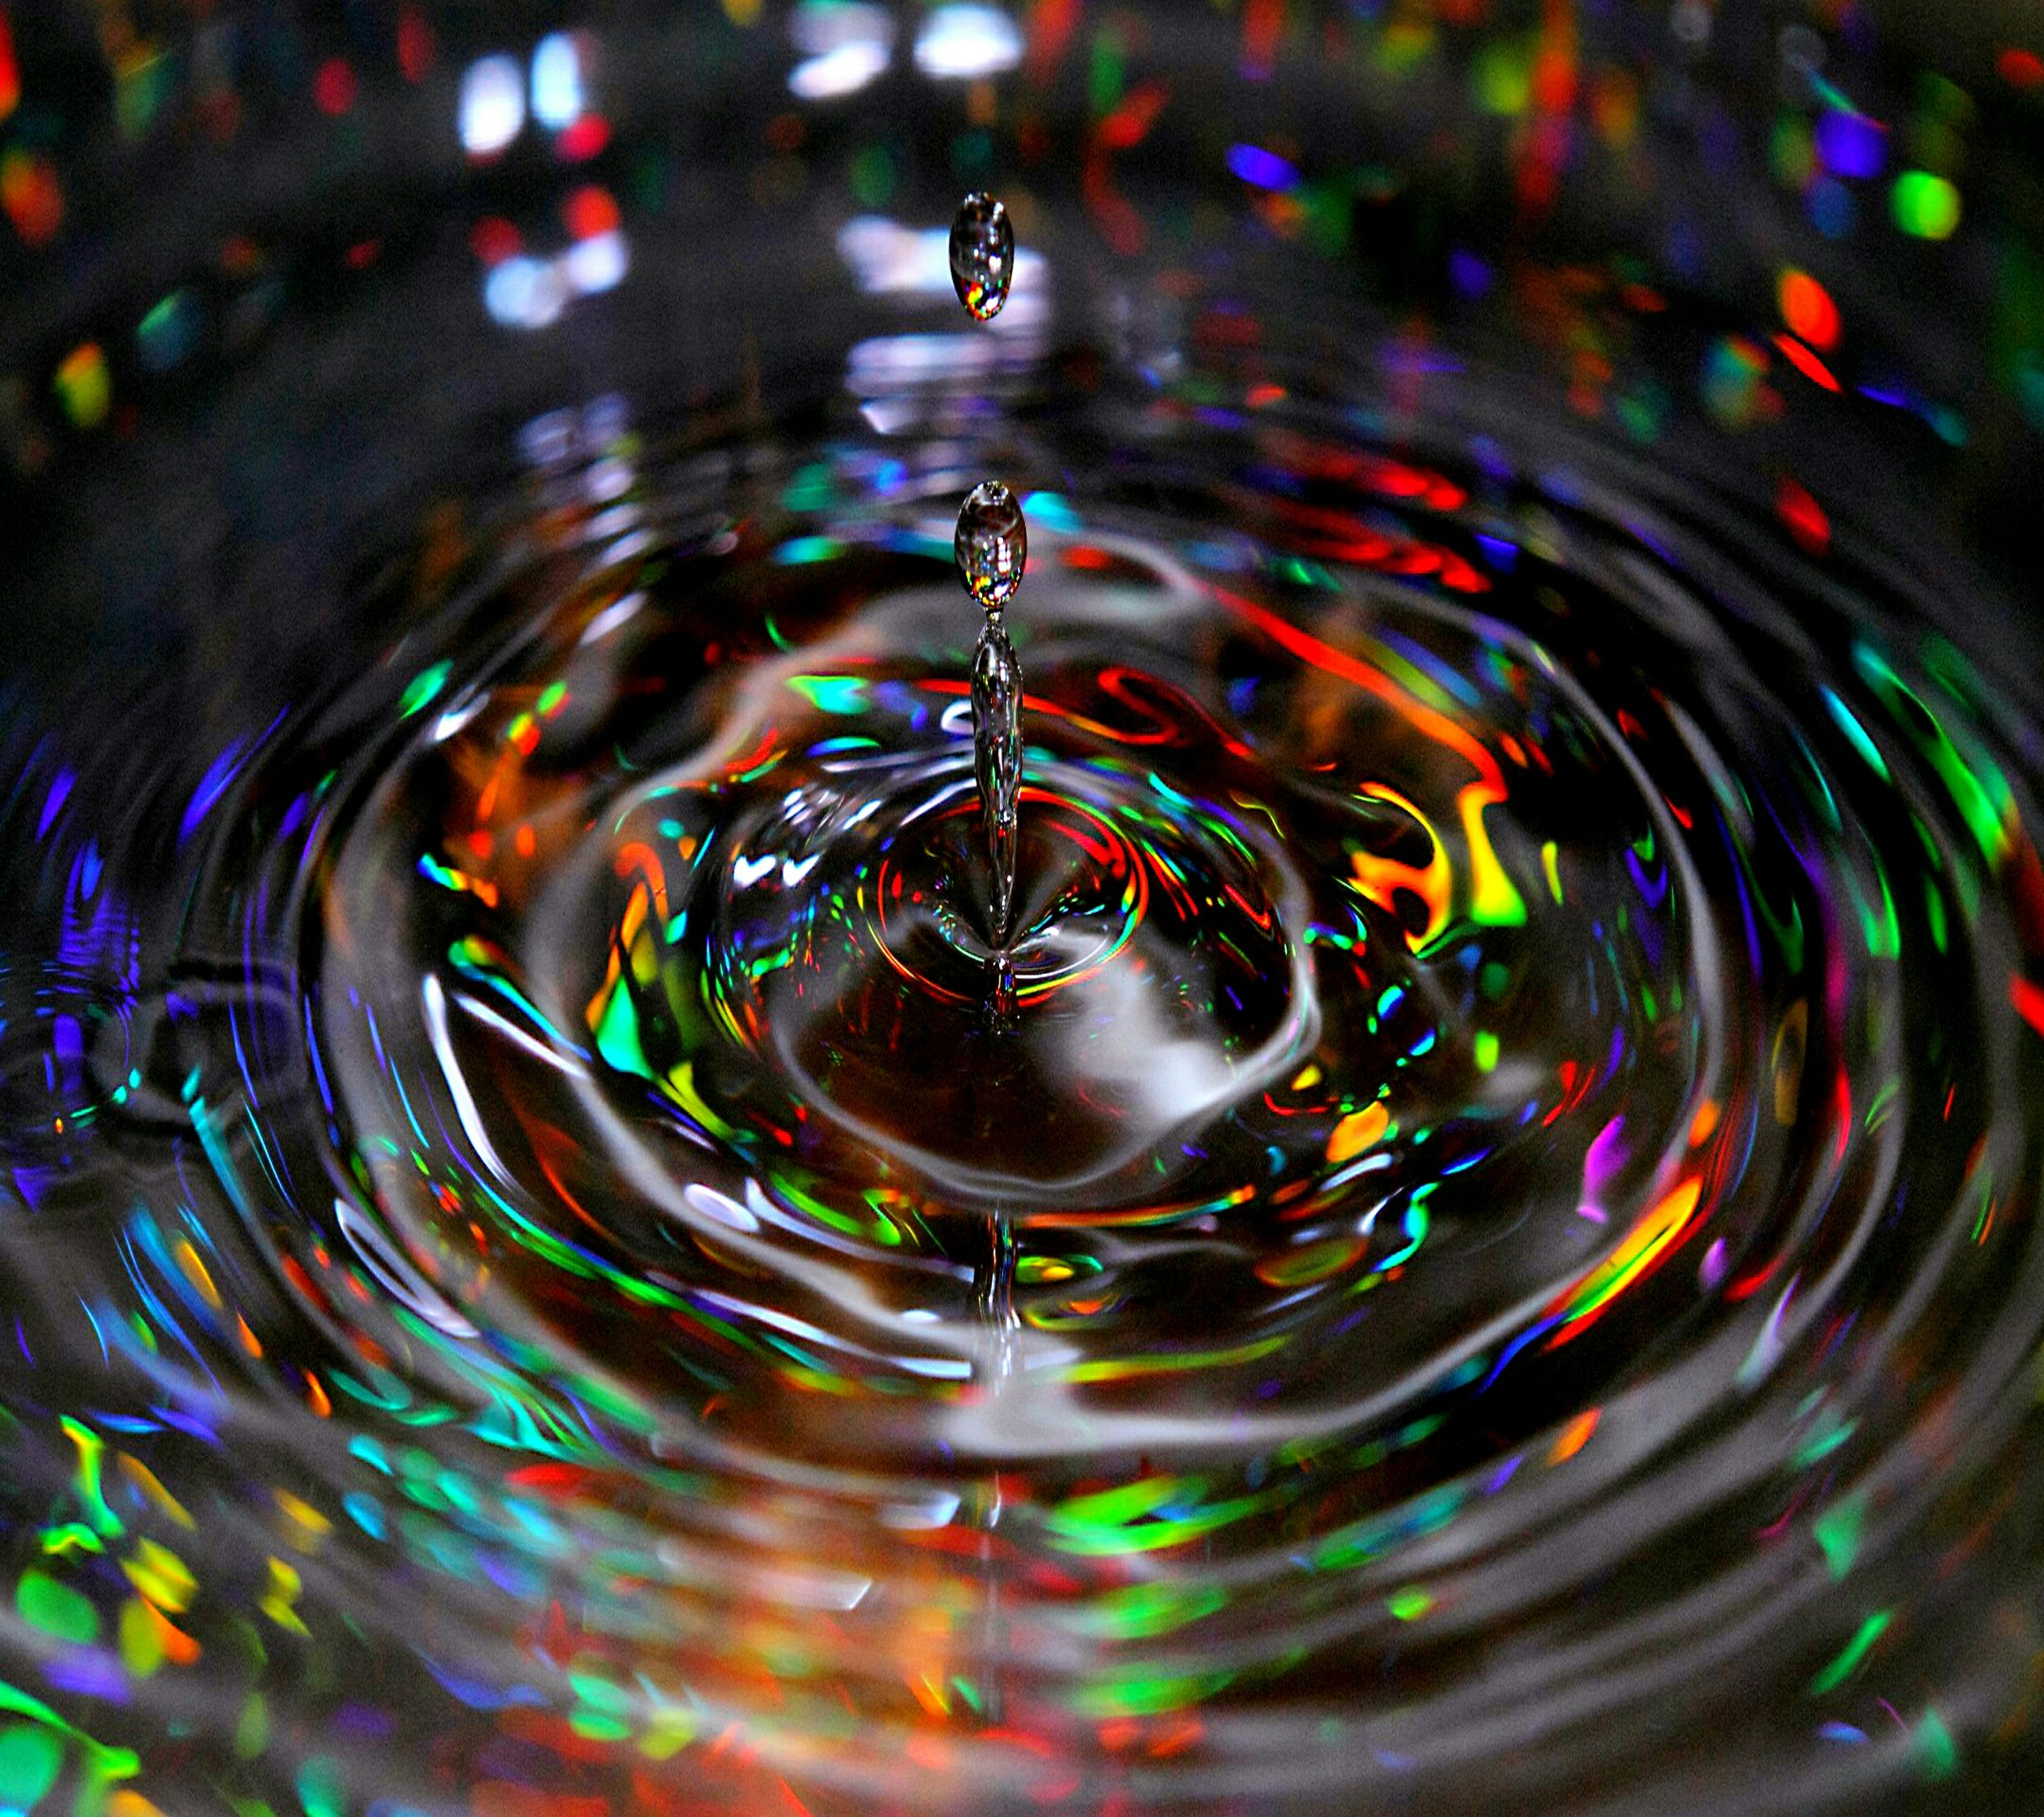 water, full frame, backgrounds, motion, rippled, abstract, pattern, waterfront, multi colored, drop, close-up, reflection, transparent, bubble, long exposure, purity, splashing, shiny, selective focus, blurred motion